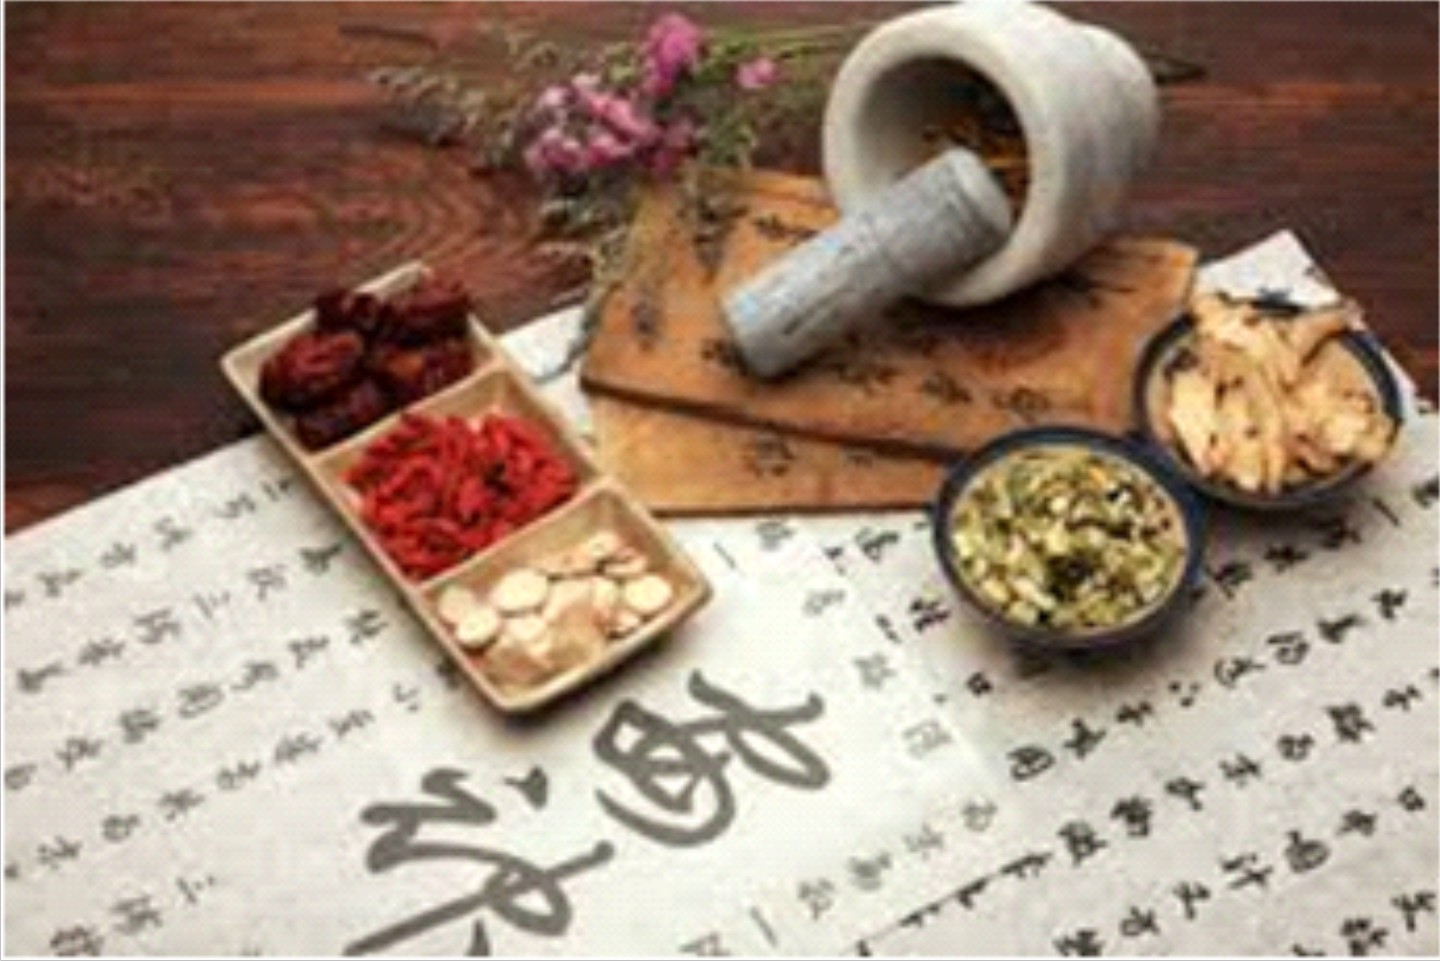 Chinese herbal products - Istock Herbs The Importation And Manufacturing Of Chinese Herbal Products